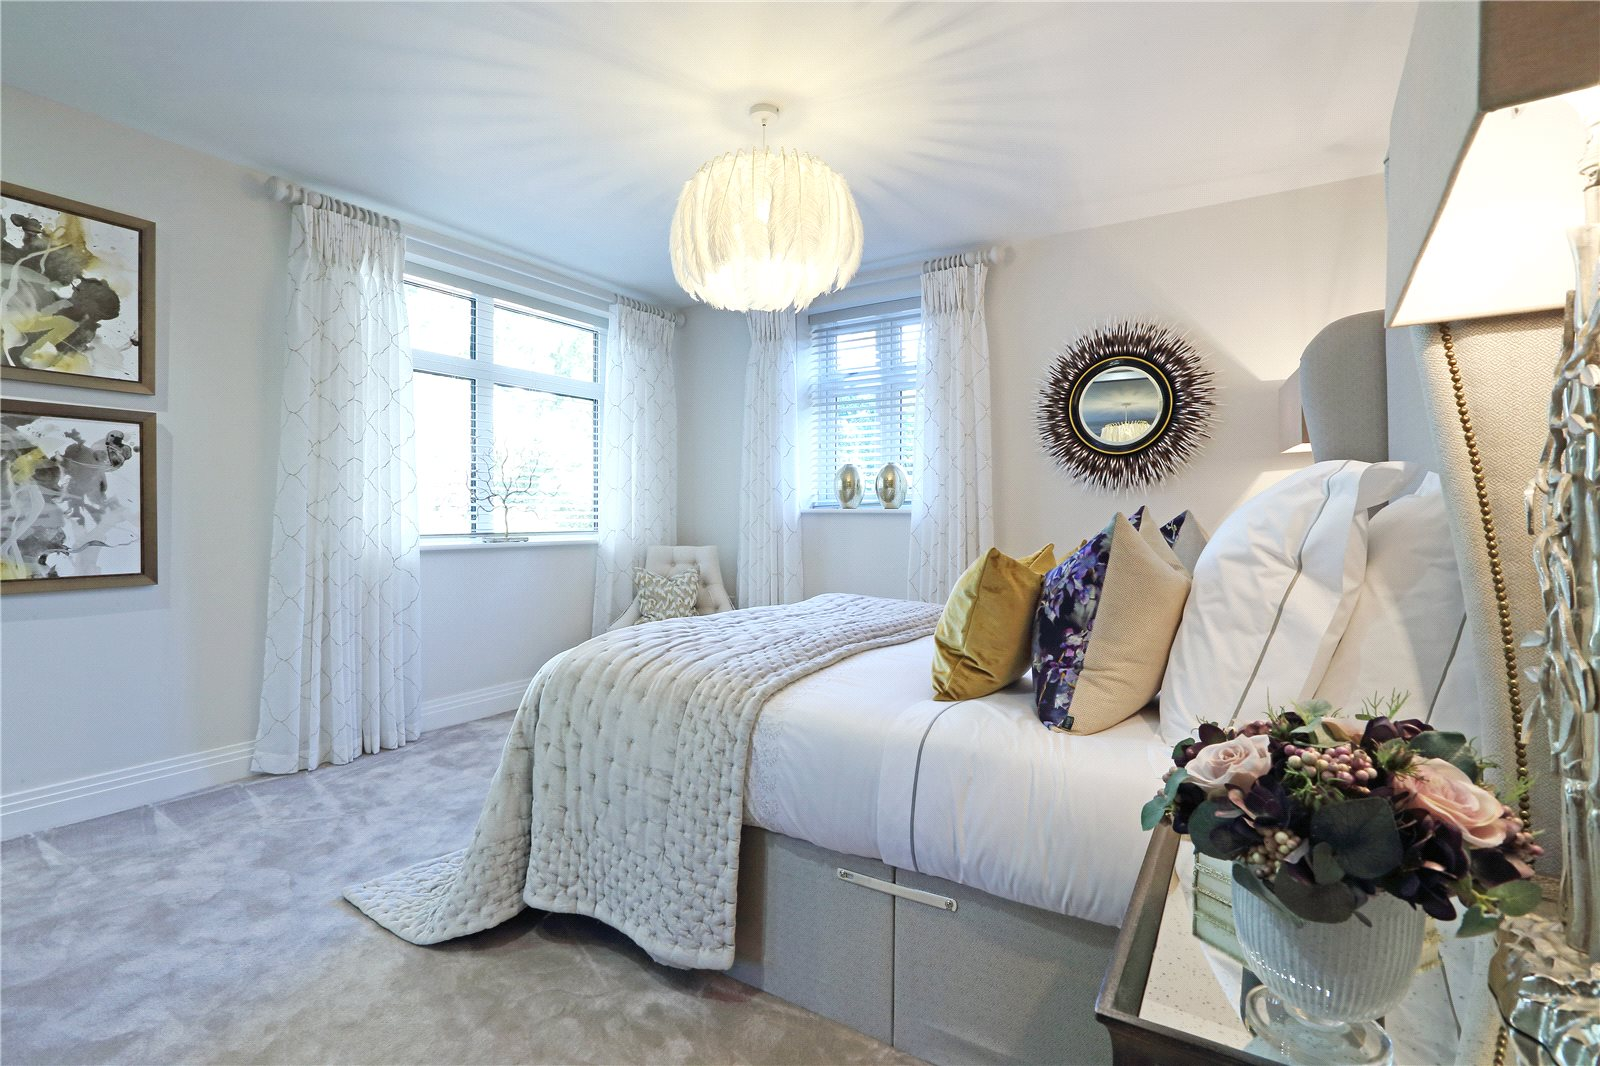 Additional photo for property listing at Scholars Place, South Park Drive, Gerrards Cross, Buckinghsmahire, SL9 英格蘭